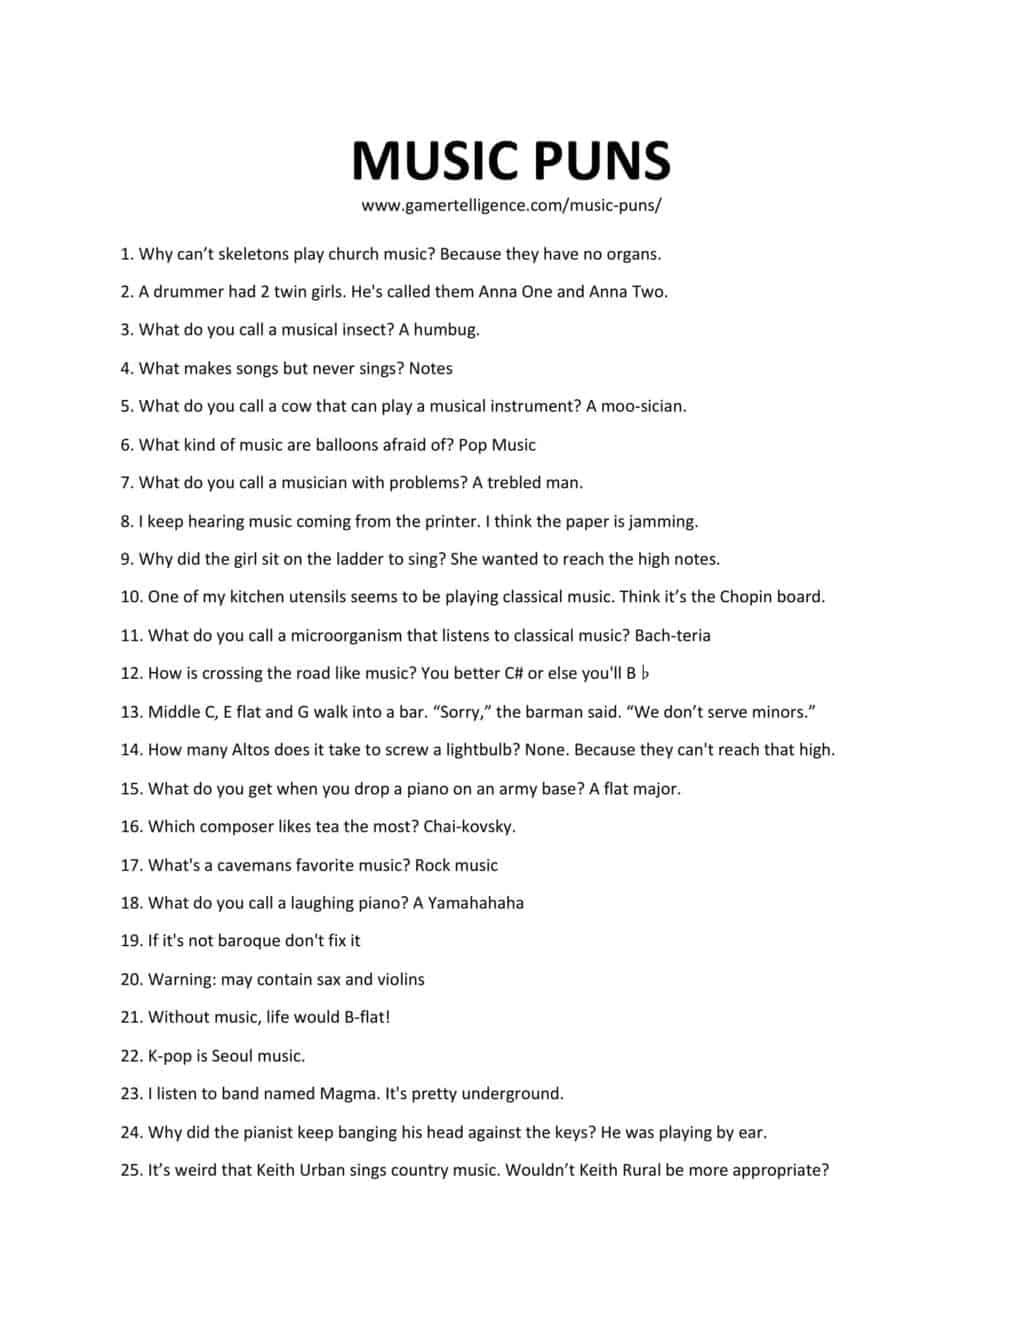 Downloadable and printable list of music puns as jpg or pdf